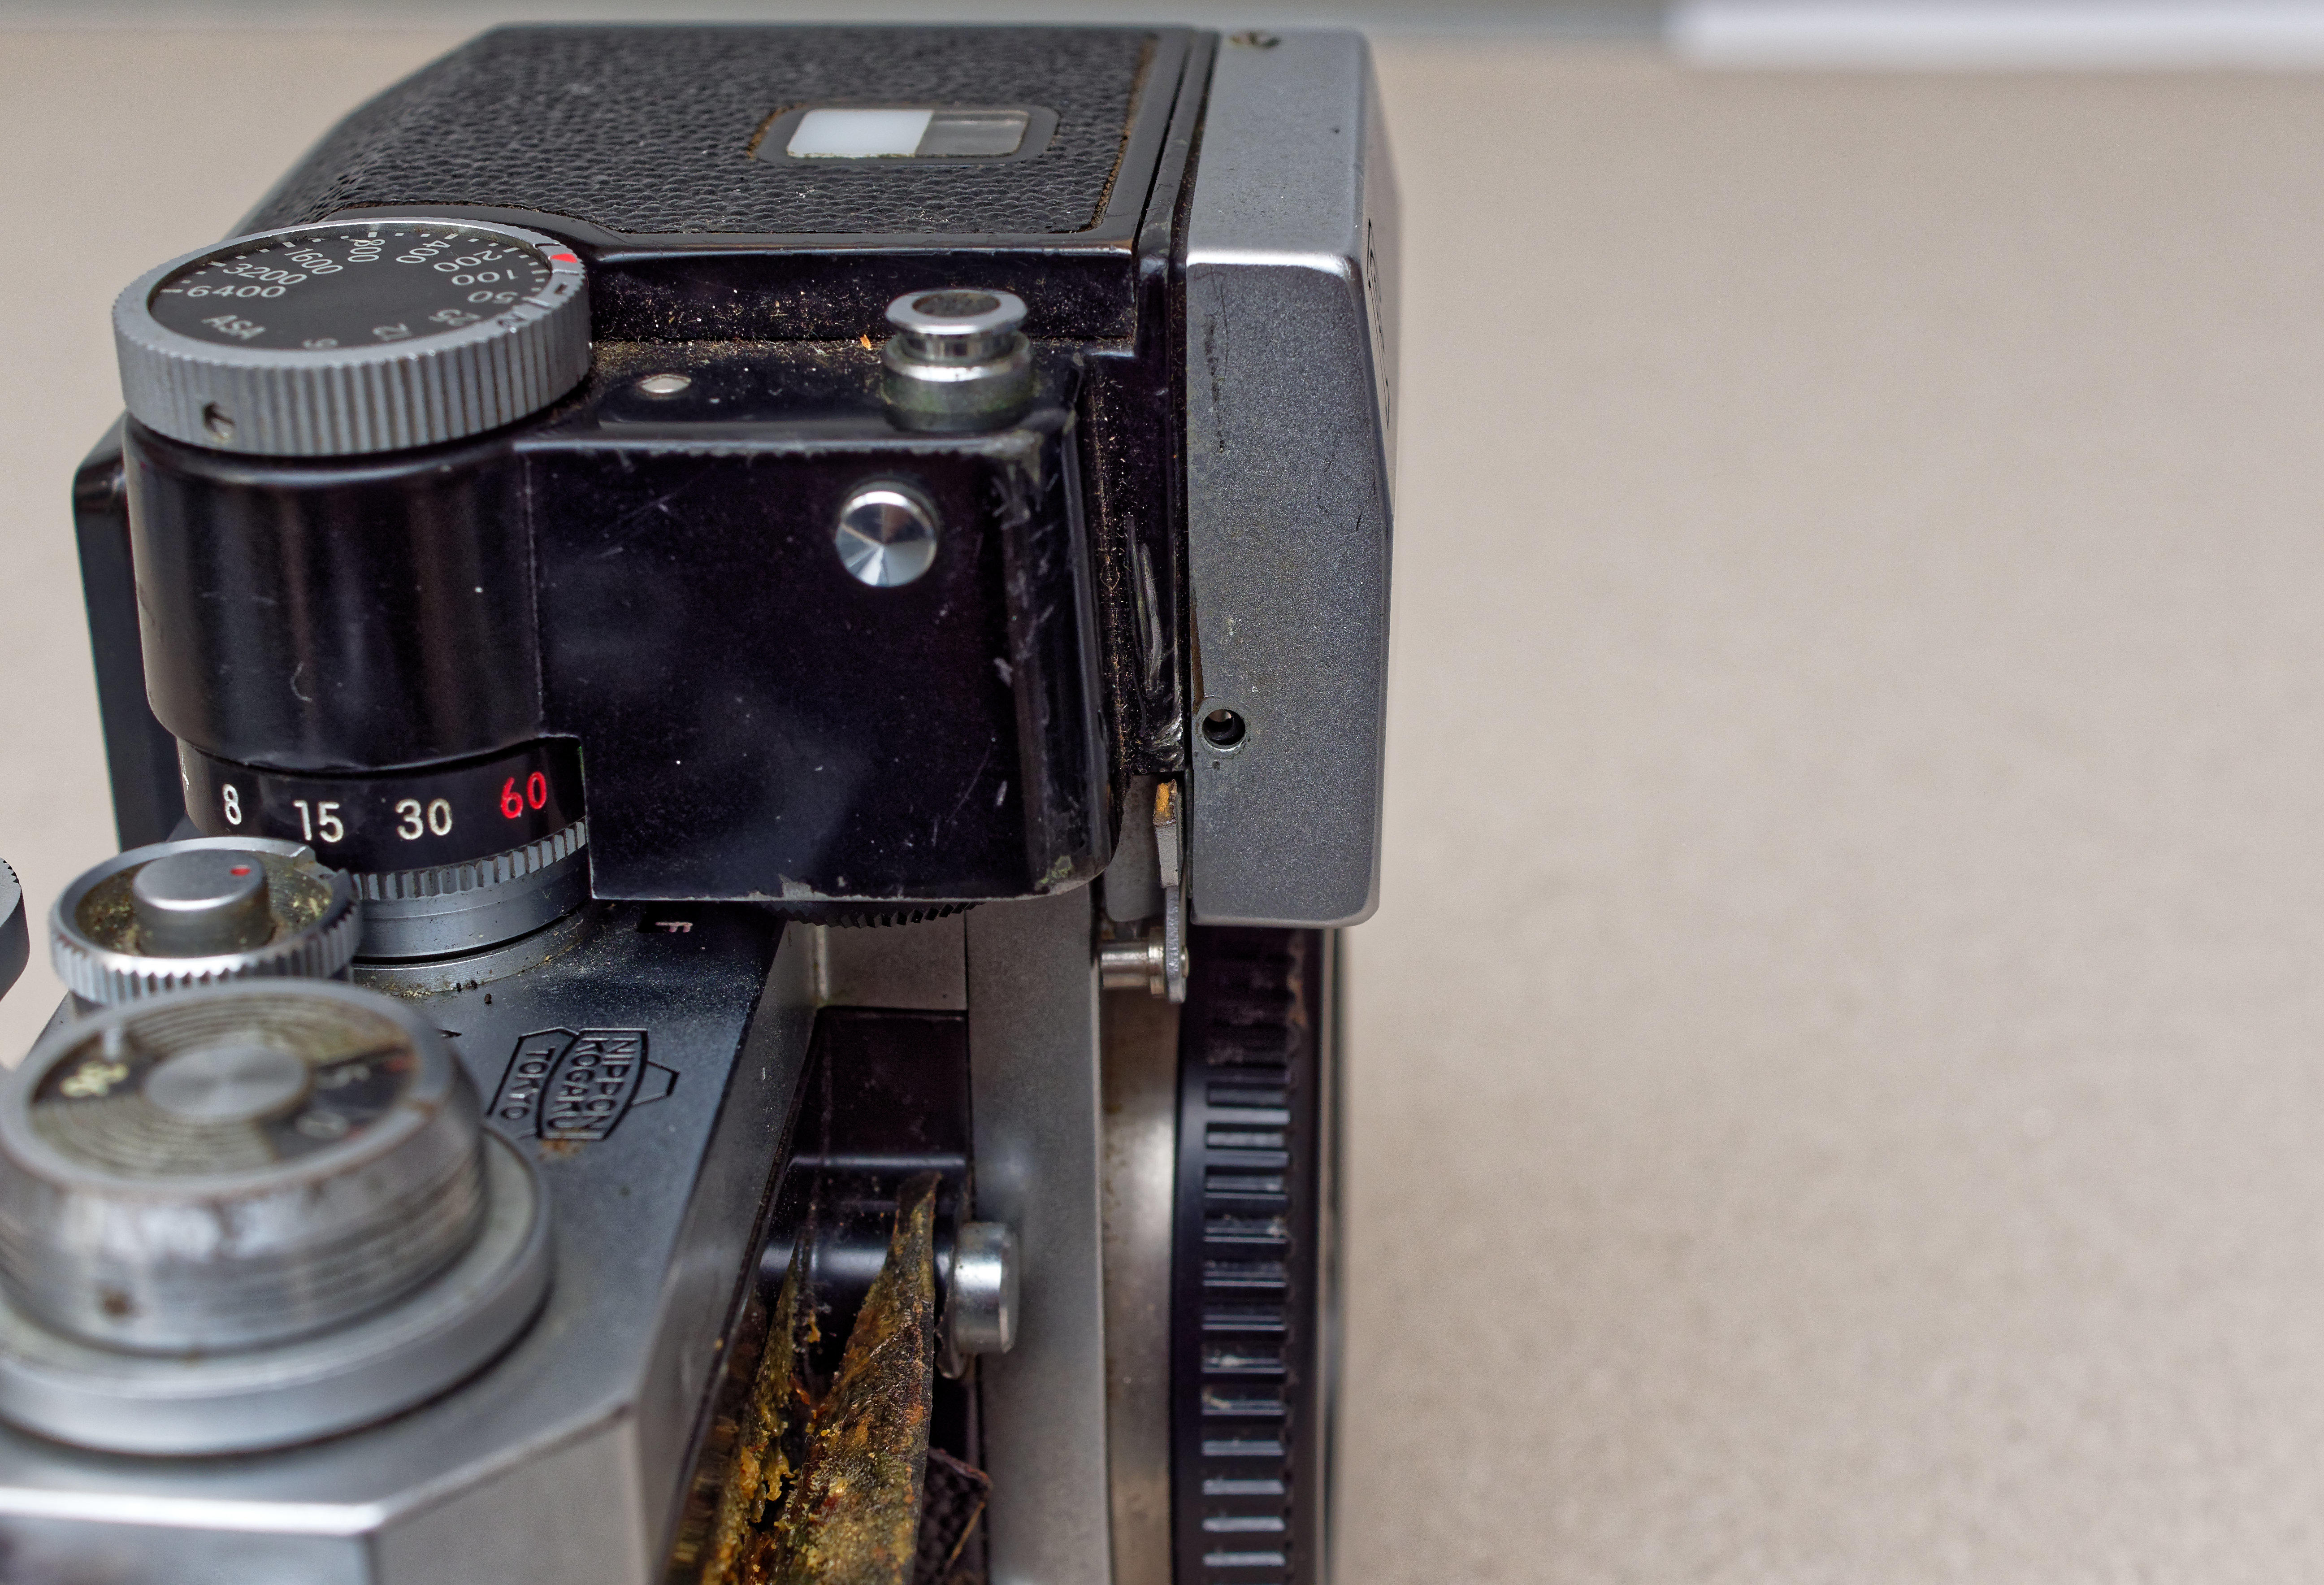 This should be Nikon-F-4.jpeg.  Is it missing?